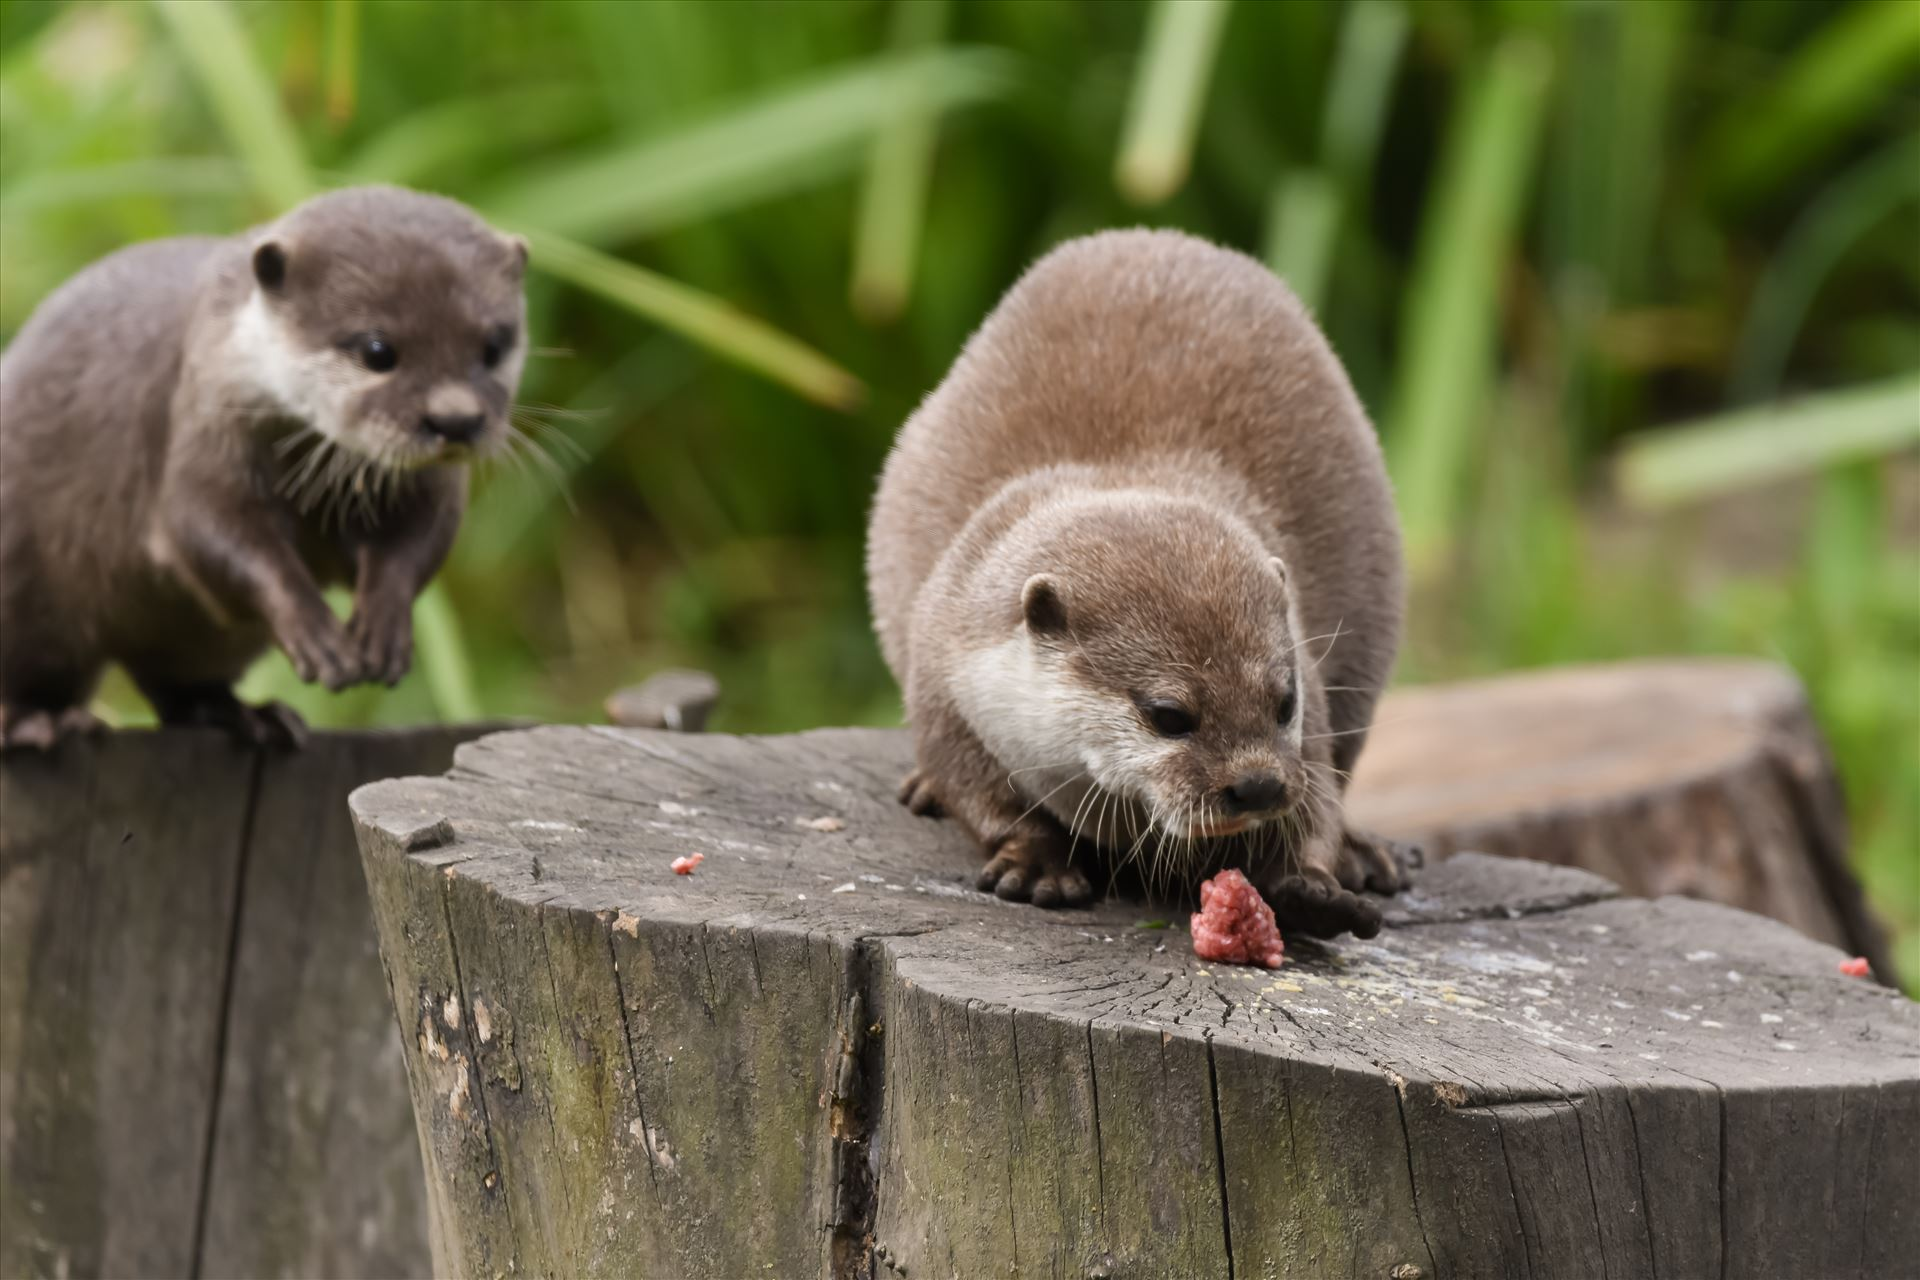 Asian short clawed otter - Asian short clawed otters at Washington WWT by philreay